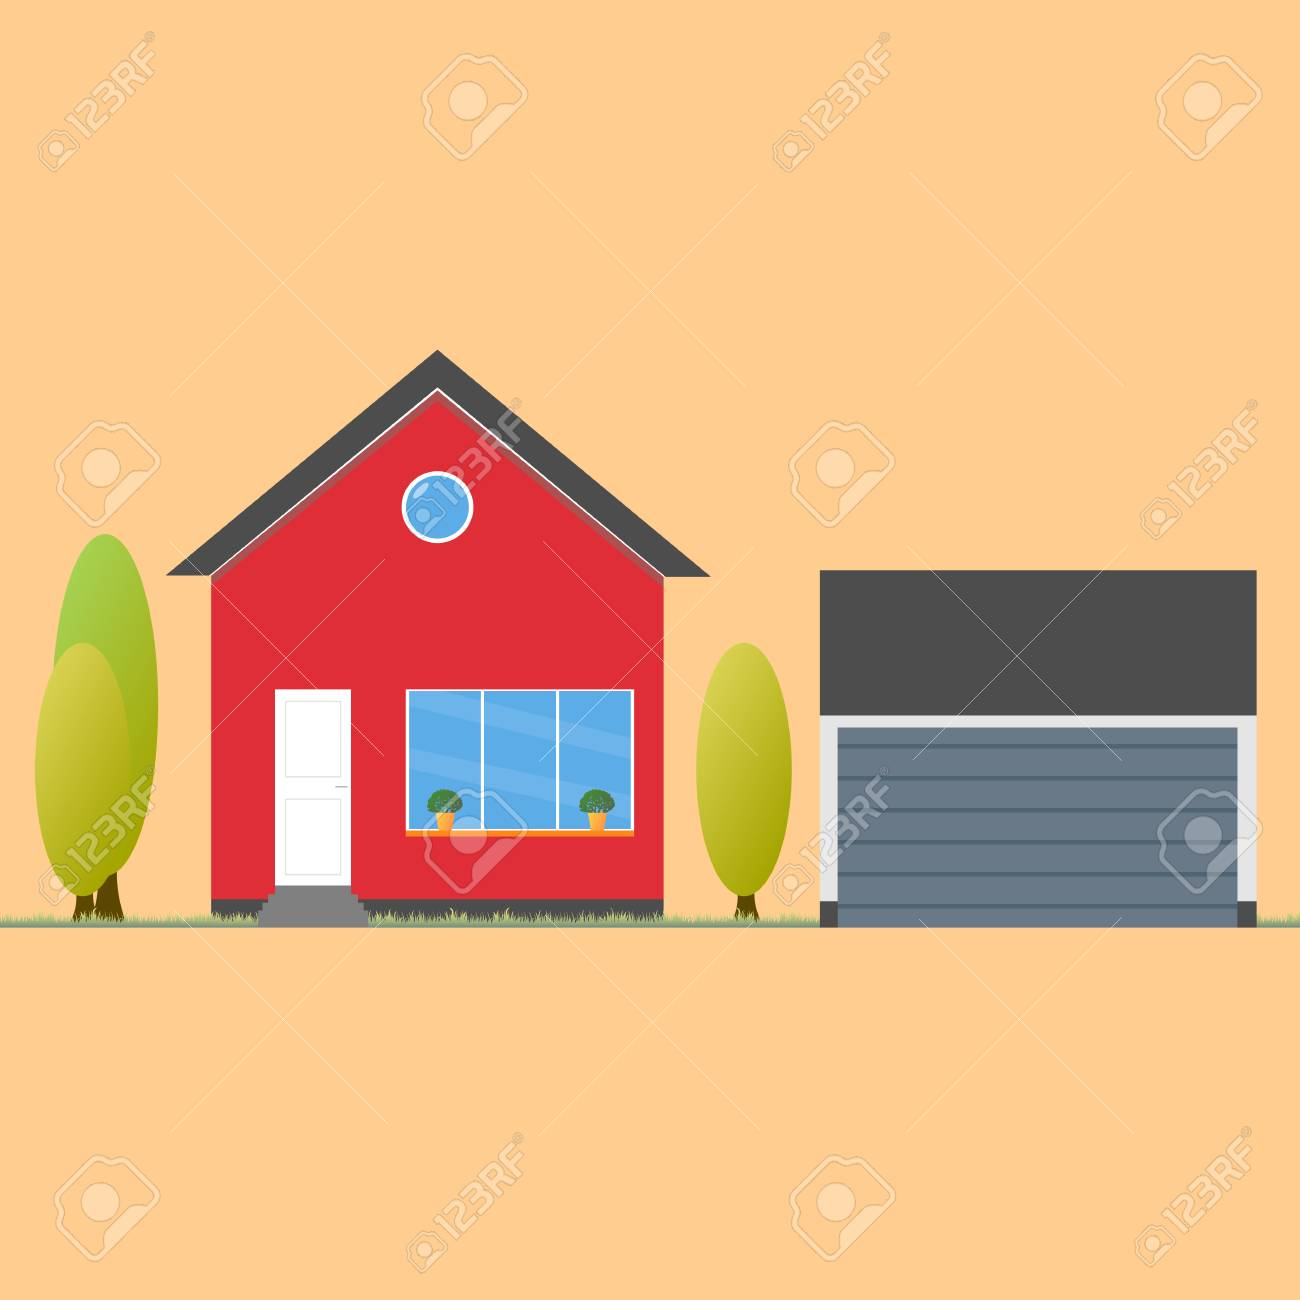 House flat icon. Design your own apartment. Colorful house concept.